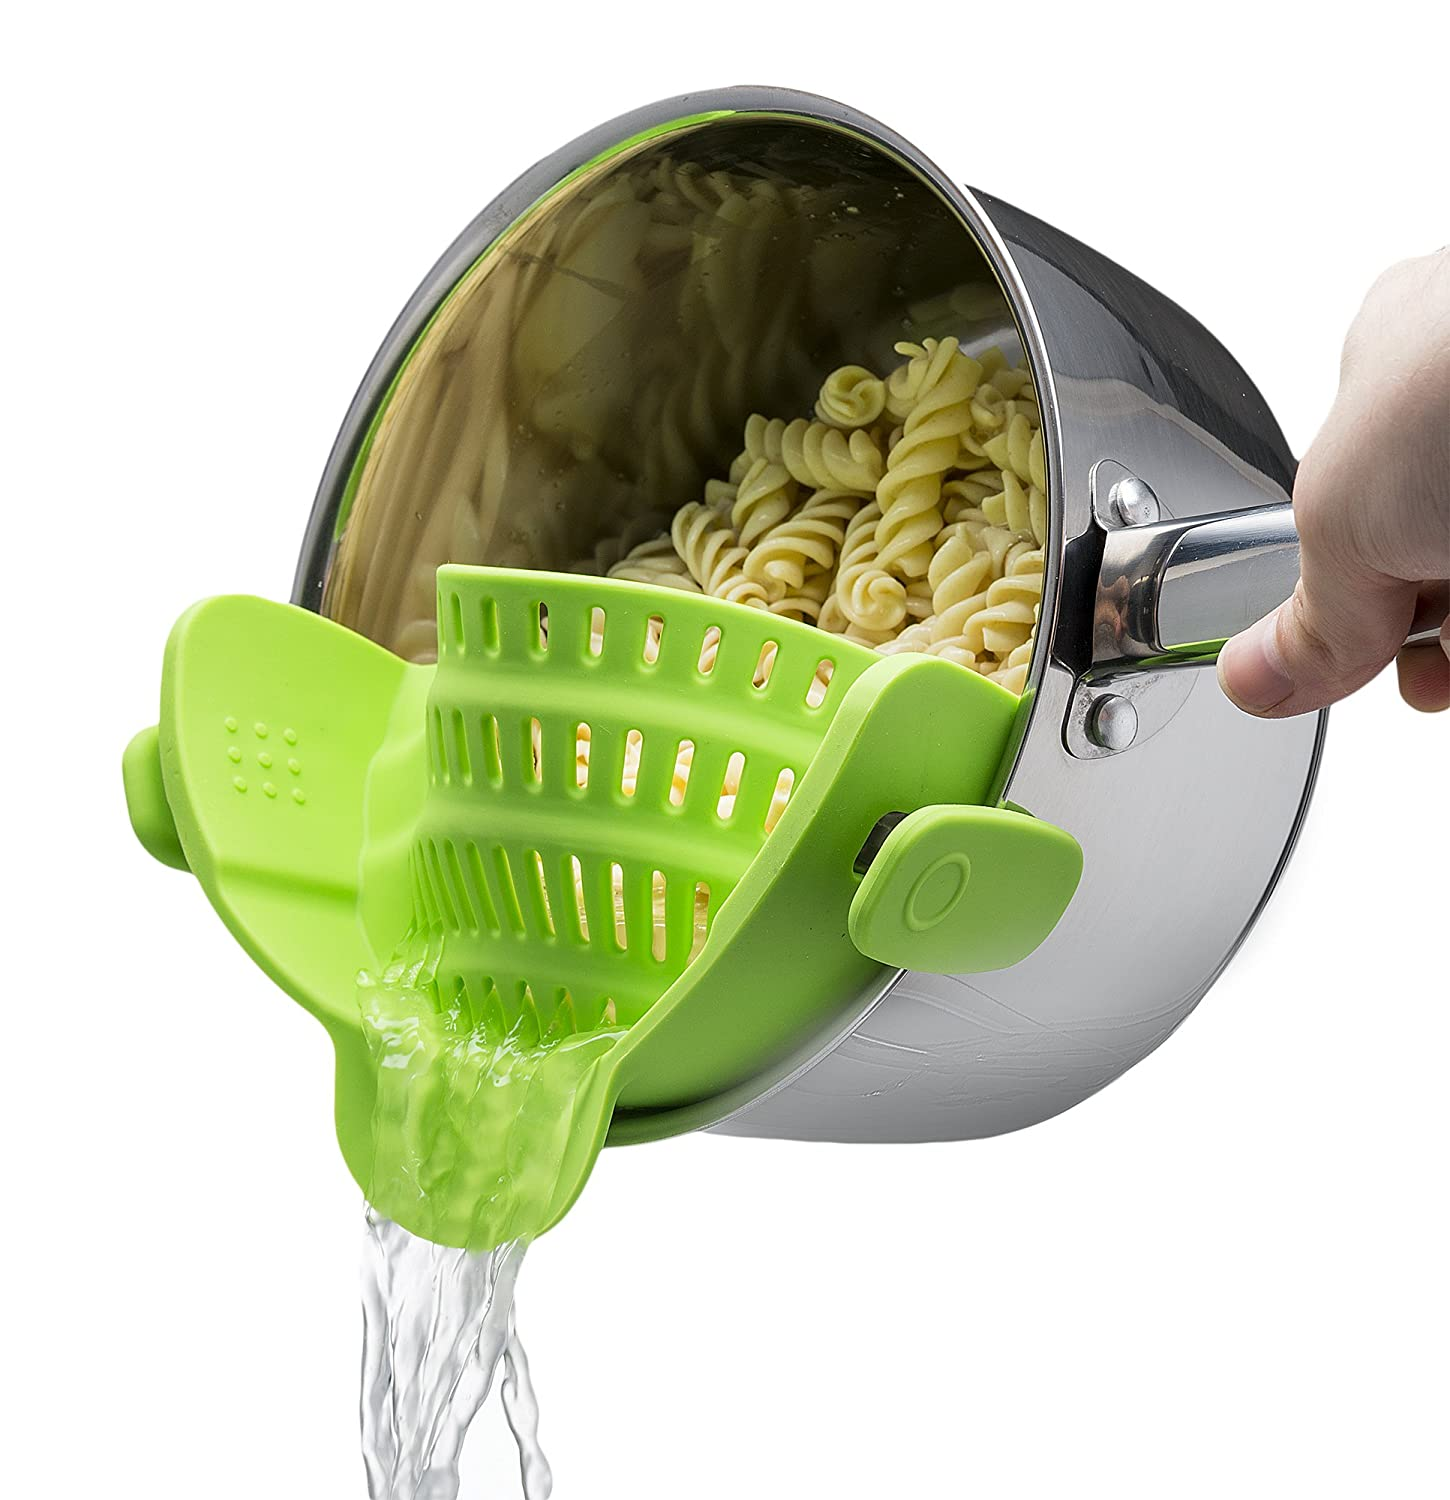 Snap 'N Strain Strainer, Clip On Silicone Colander, Fits all Pots and Bowls -